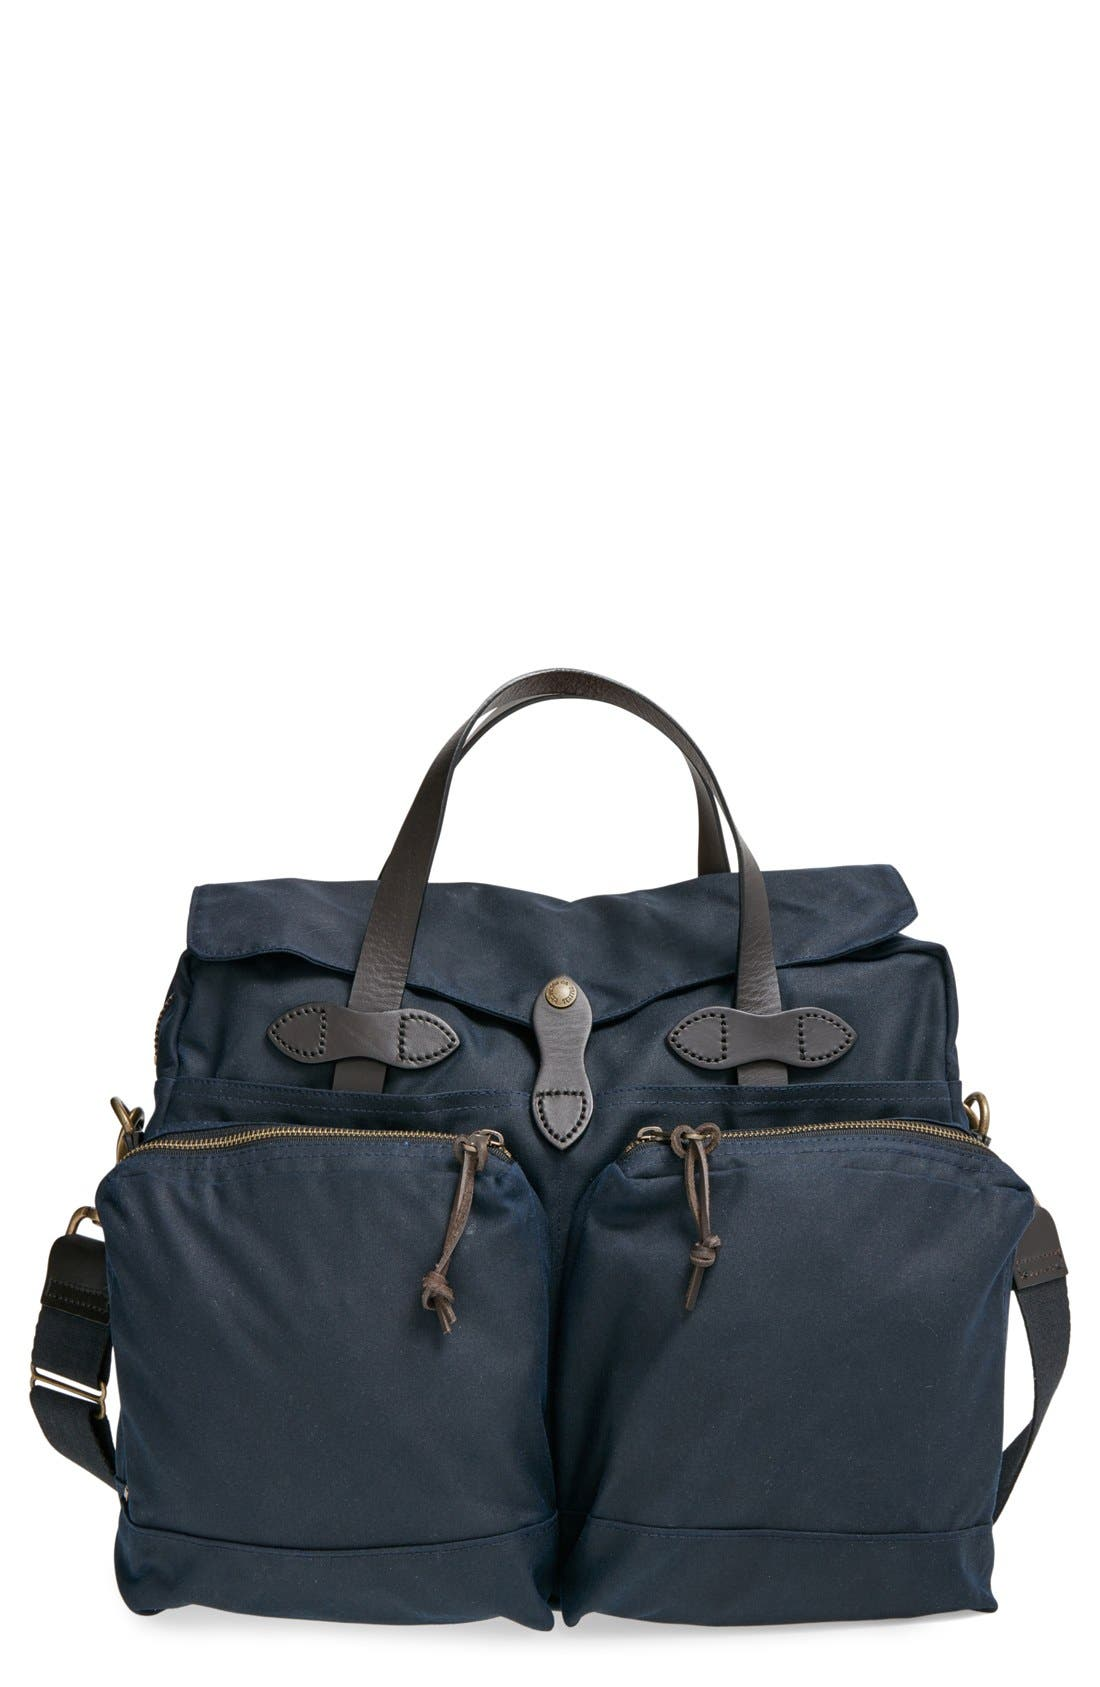 Alternate Image 1 Selected - Filson '24 Hour' Tin Cloth Briefcase